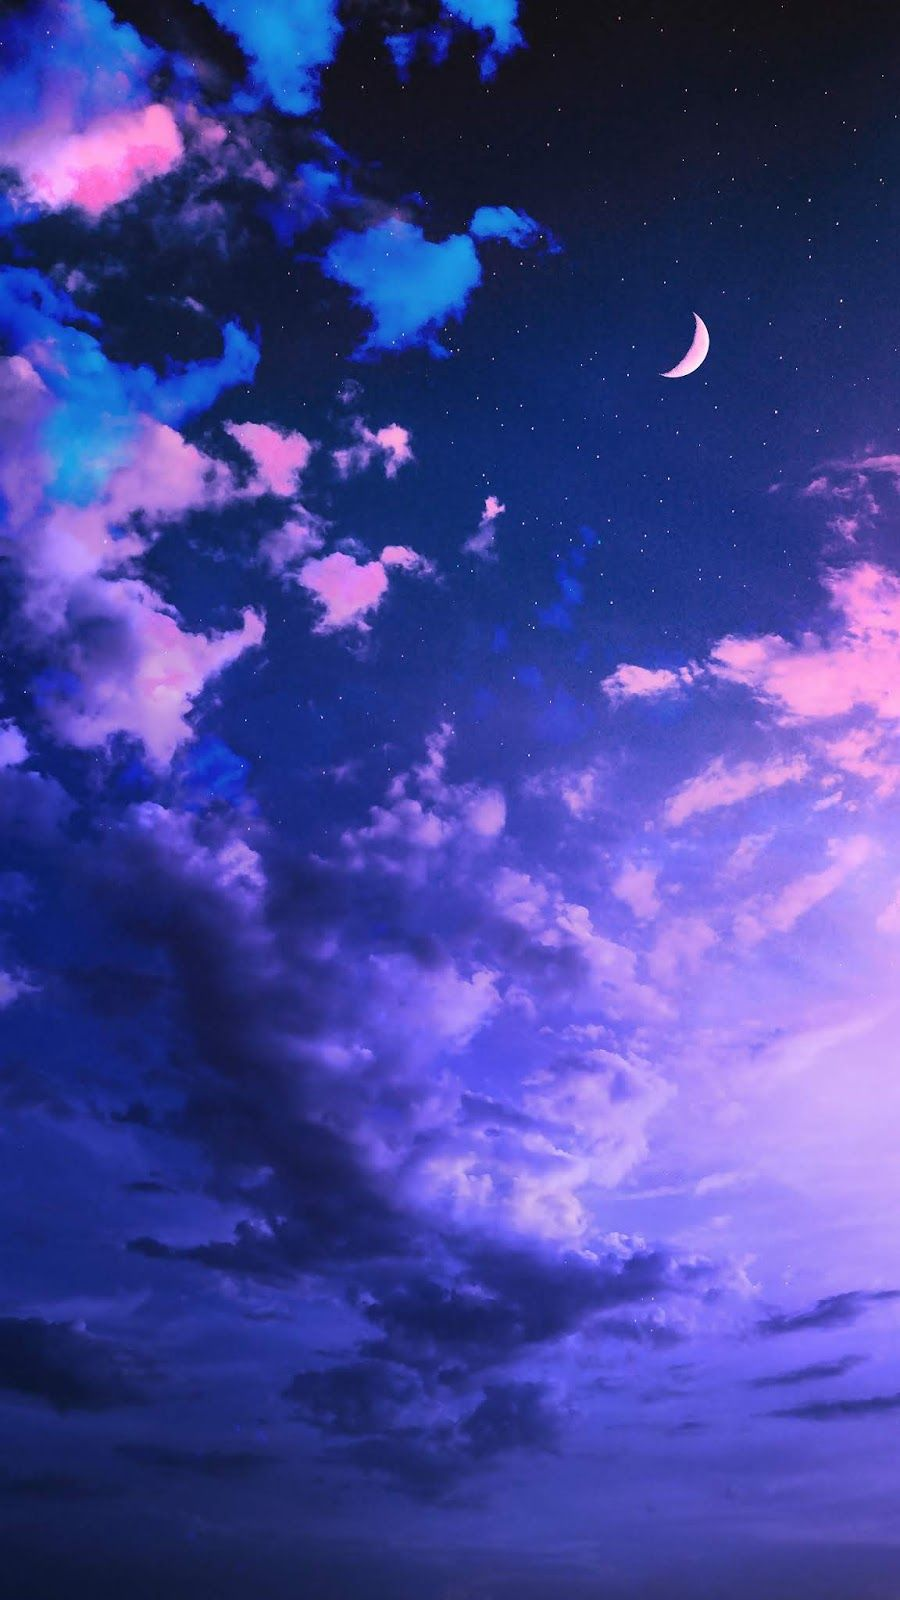 Under Night Sky Wallpaper Iphone Android Background Followme Night Sky Wallpaper Night Skies Sky Aesthetic